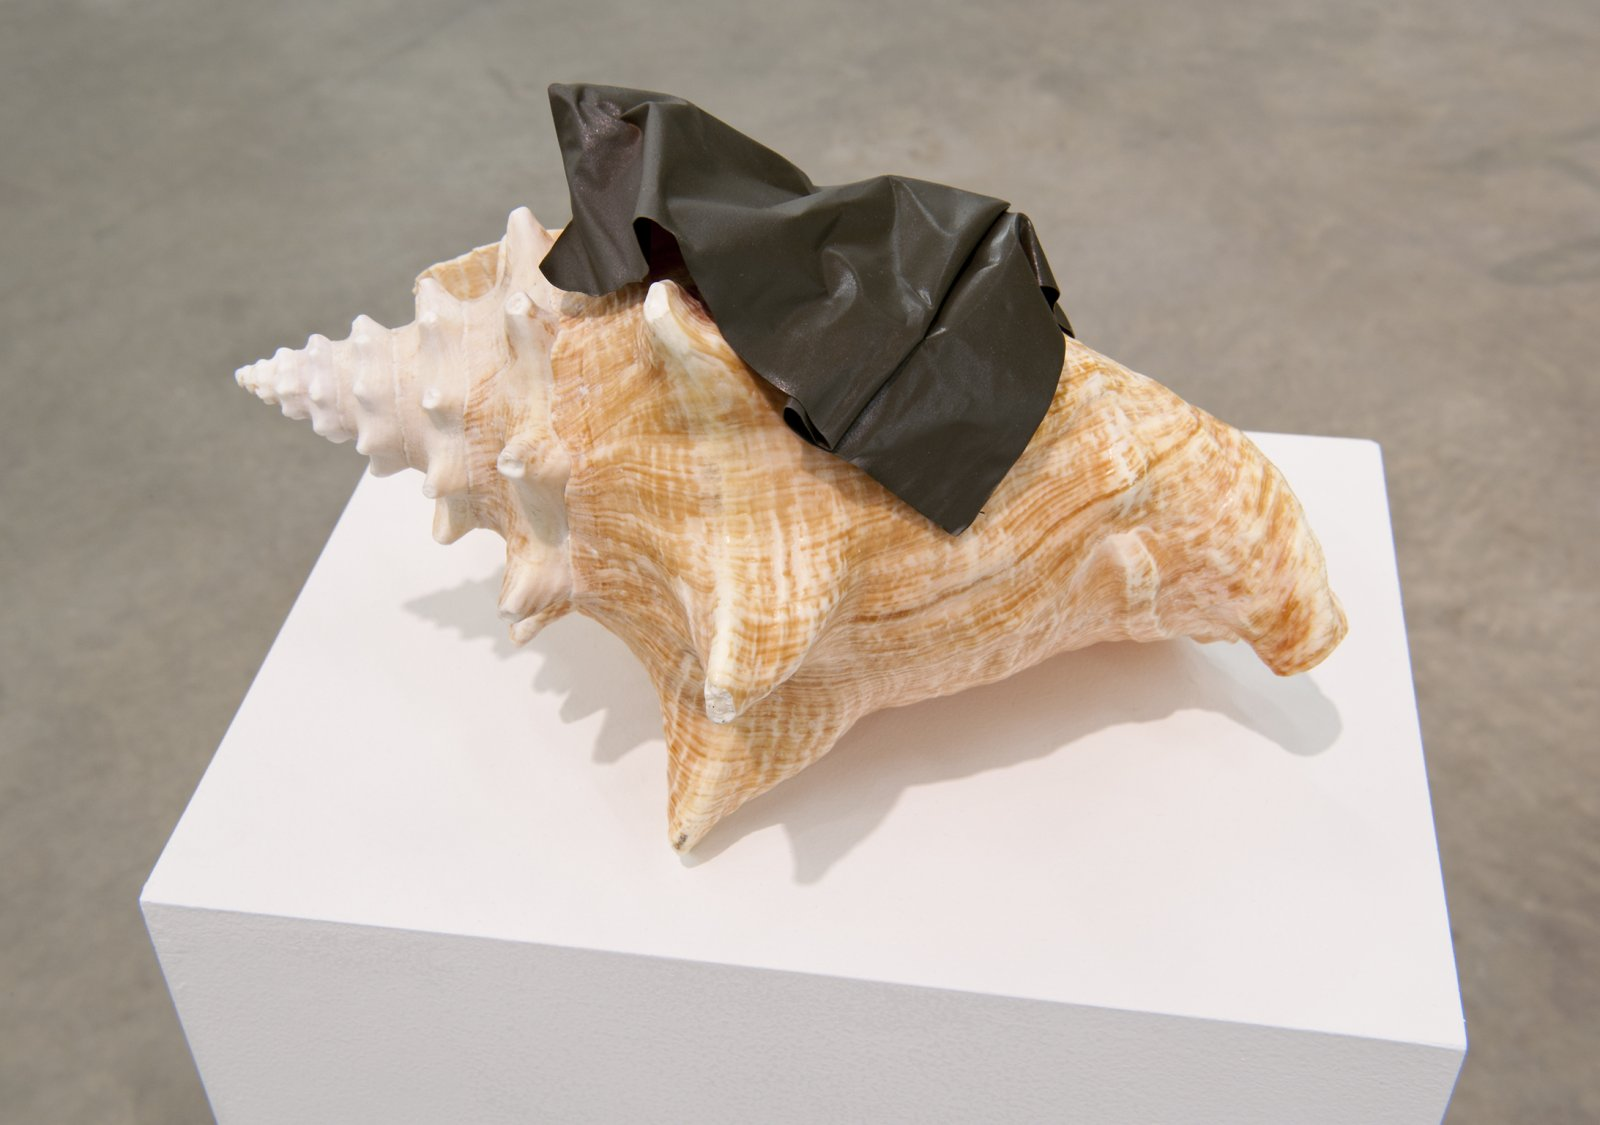 Judy Radul, Object Analysis Spectator Poem (Conch), 2012, painted copper, conch, colour photograph, 40 x 11 x 10 in. (102 x 28 x 25 cm) by Judy Radul